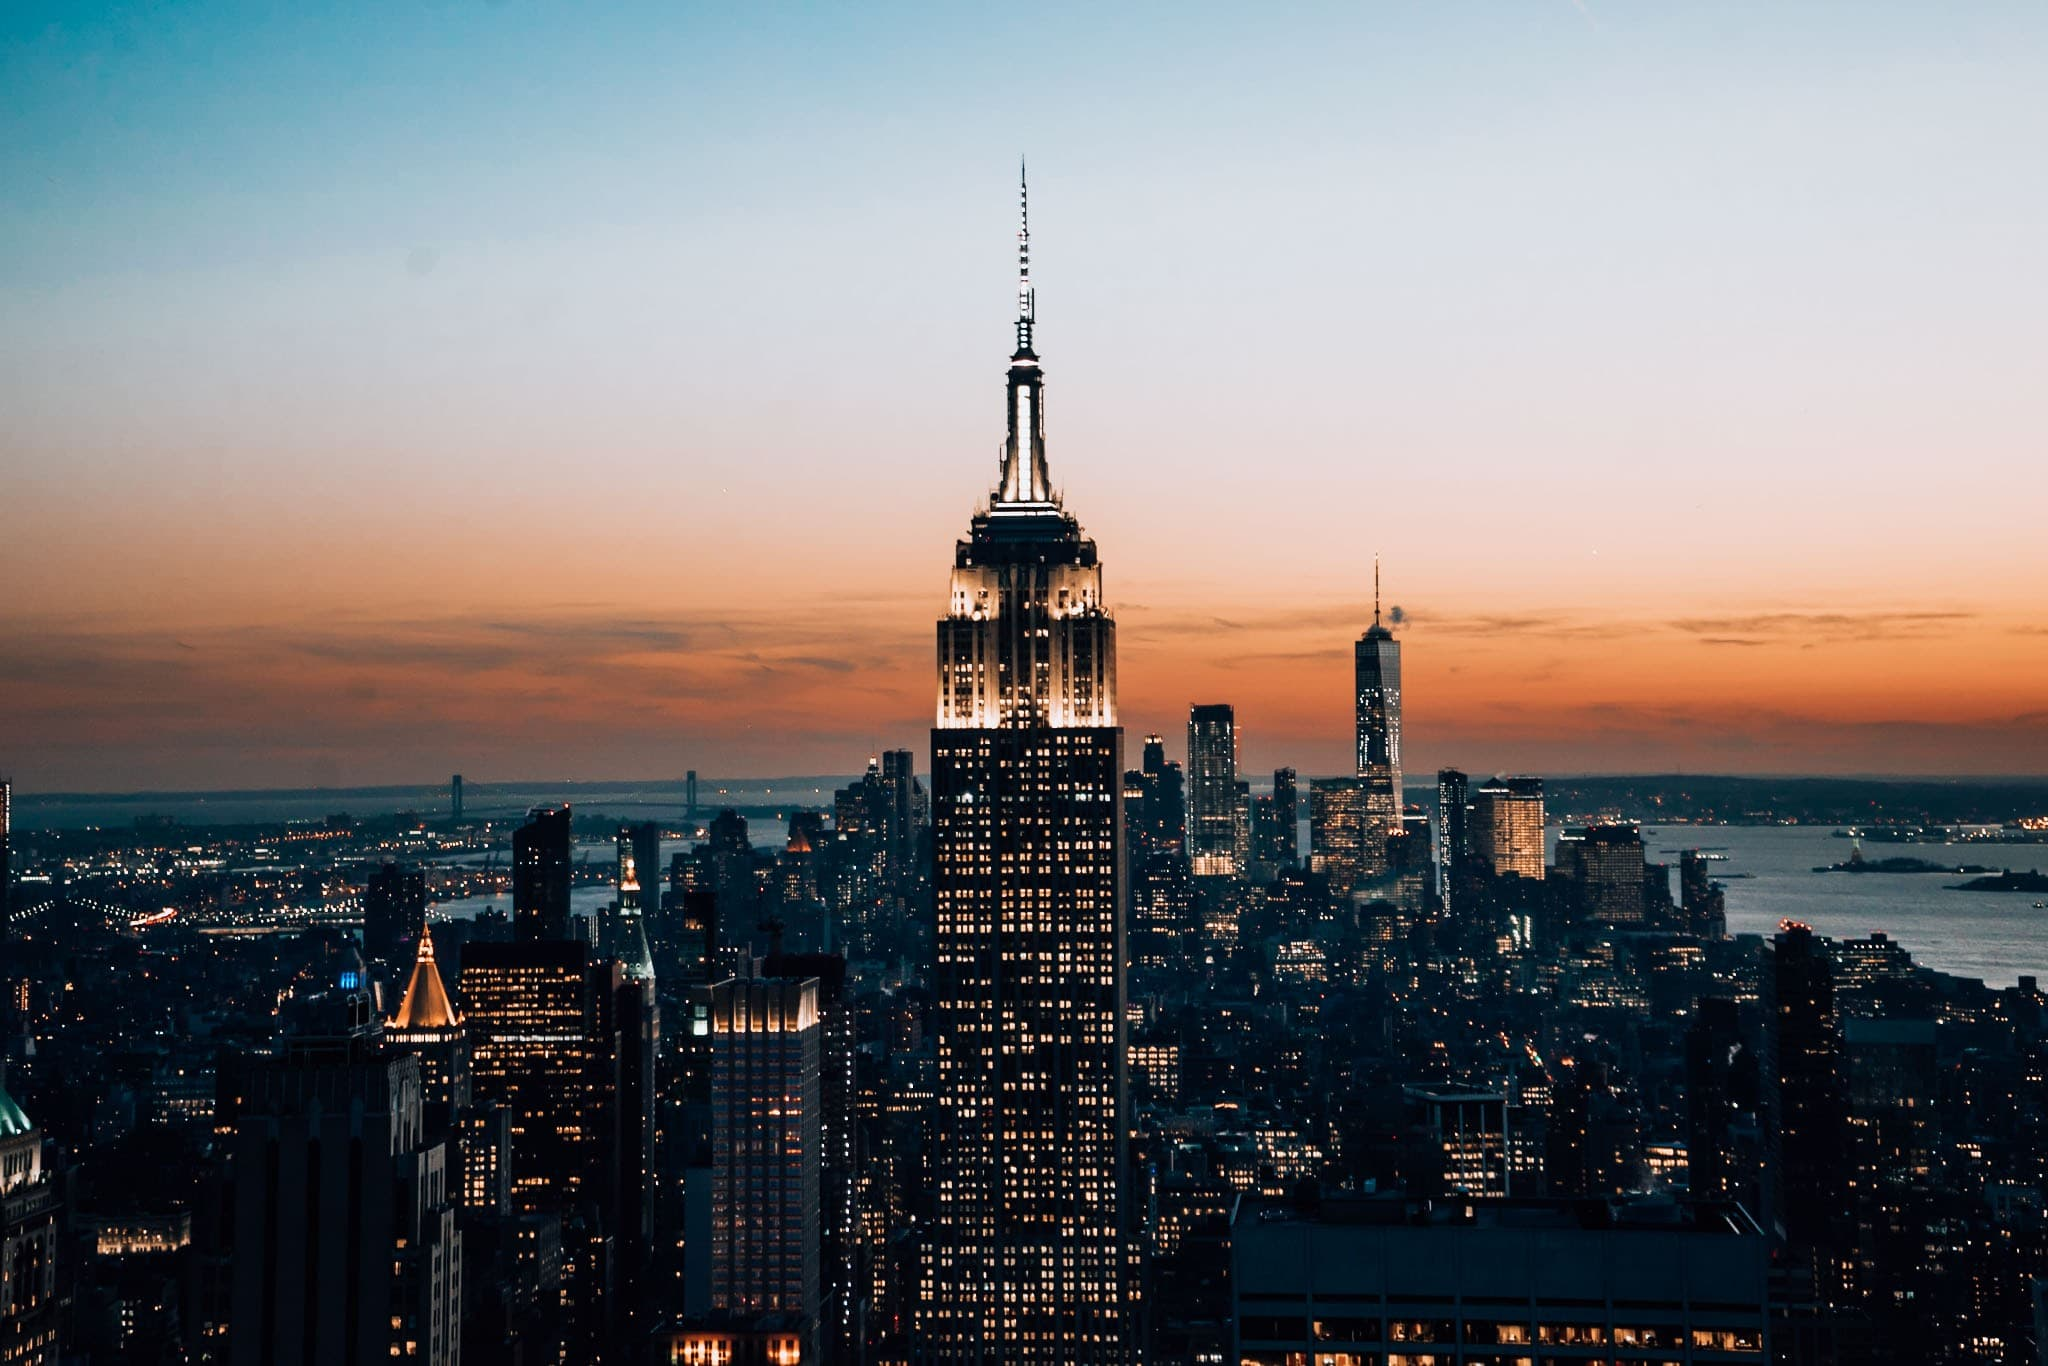 Top of the Rock in New York City: Best Sunset over Manhattan